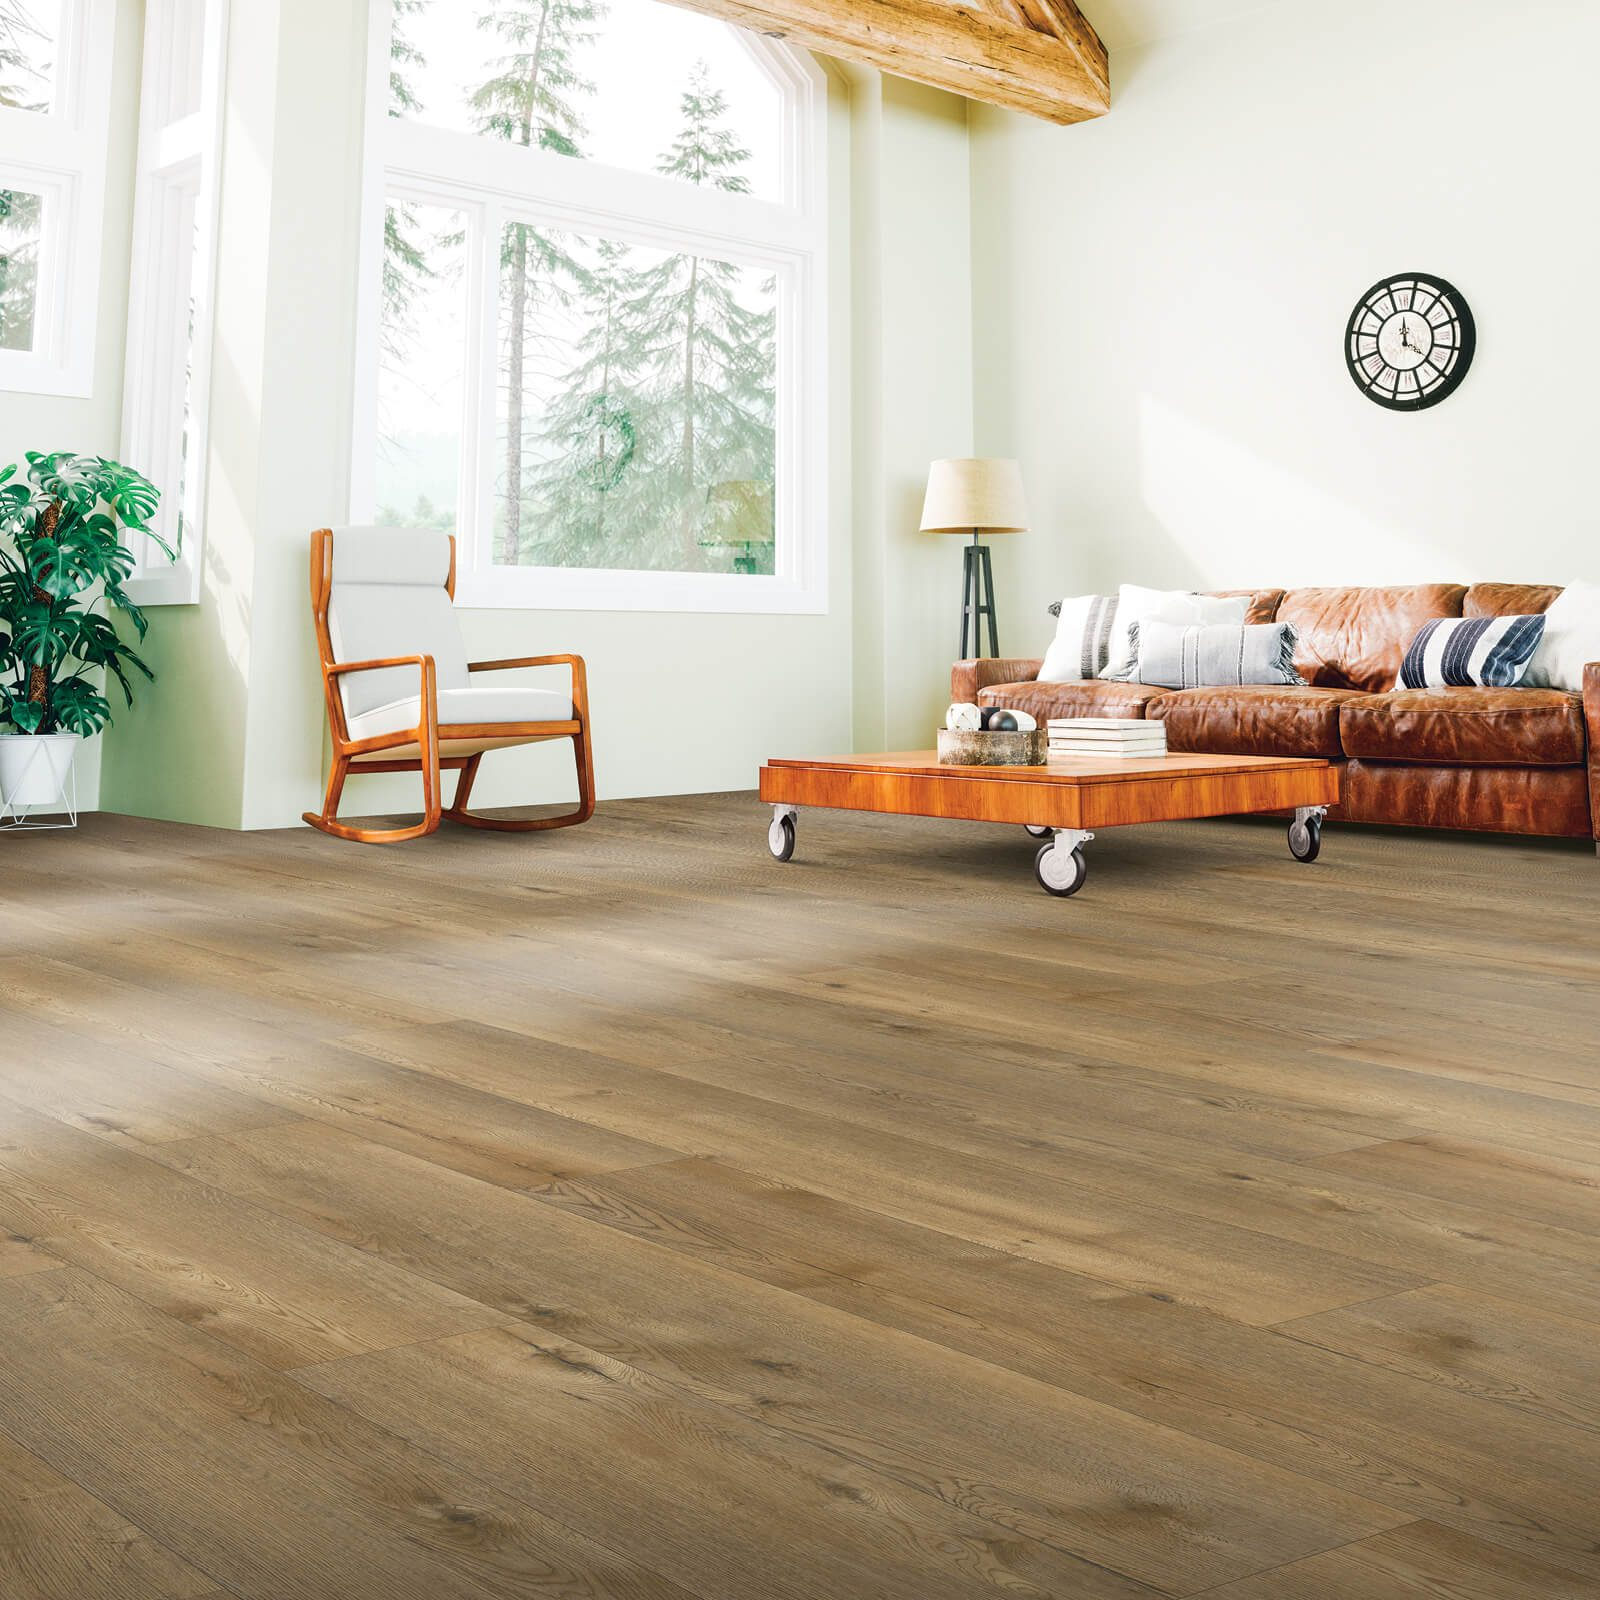 Laminate Flooring Installed in Living Room | Leicester Flooring